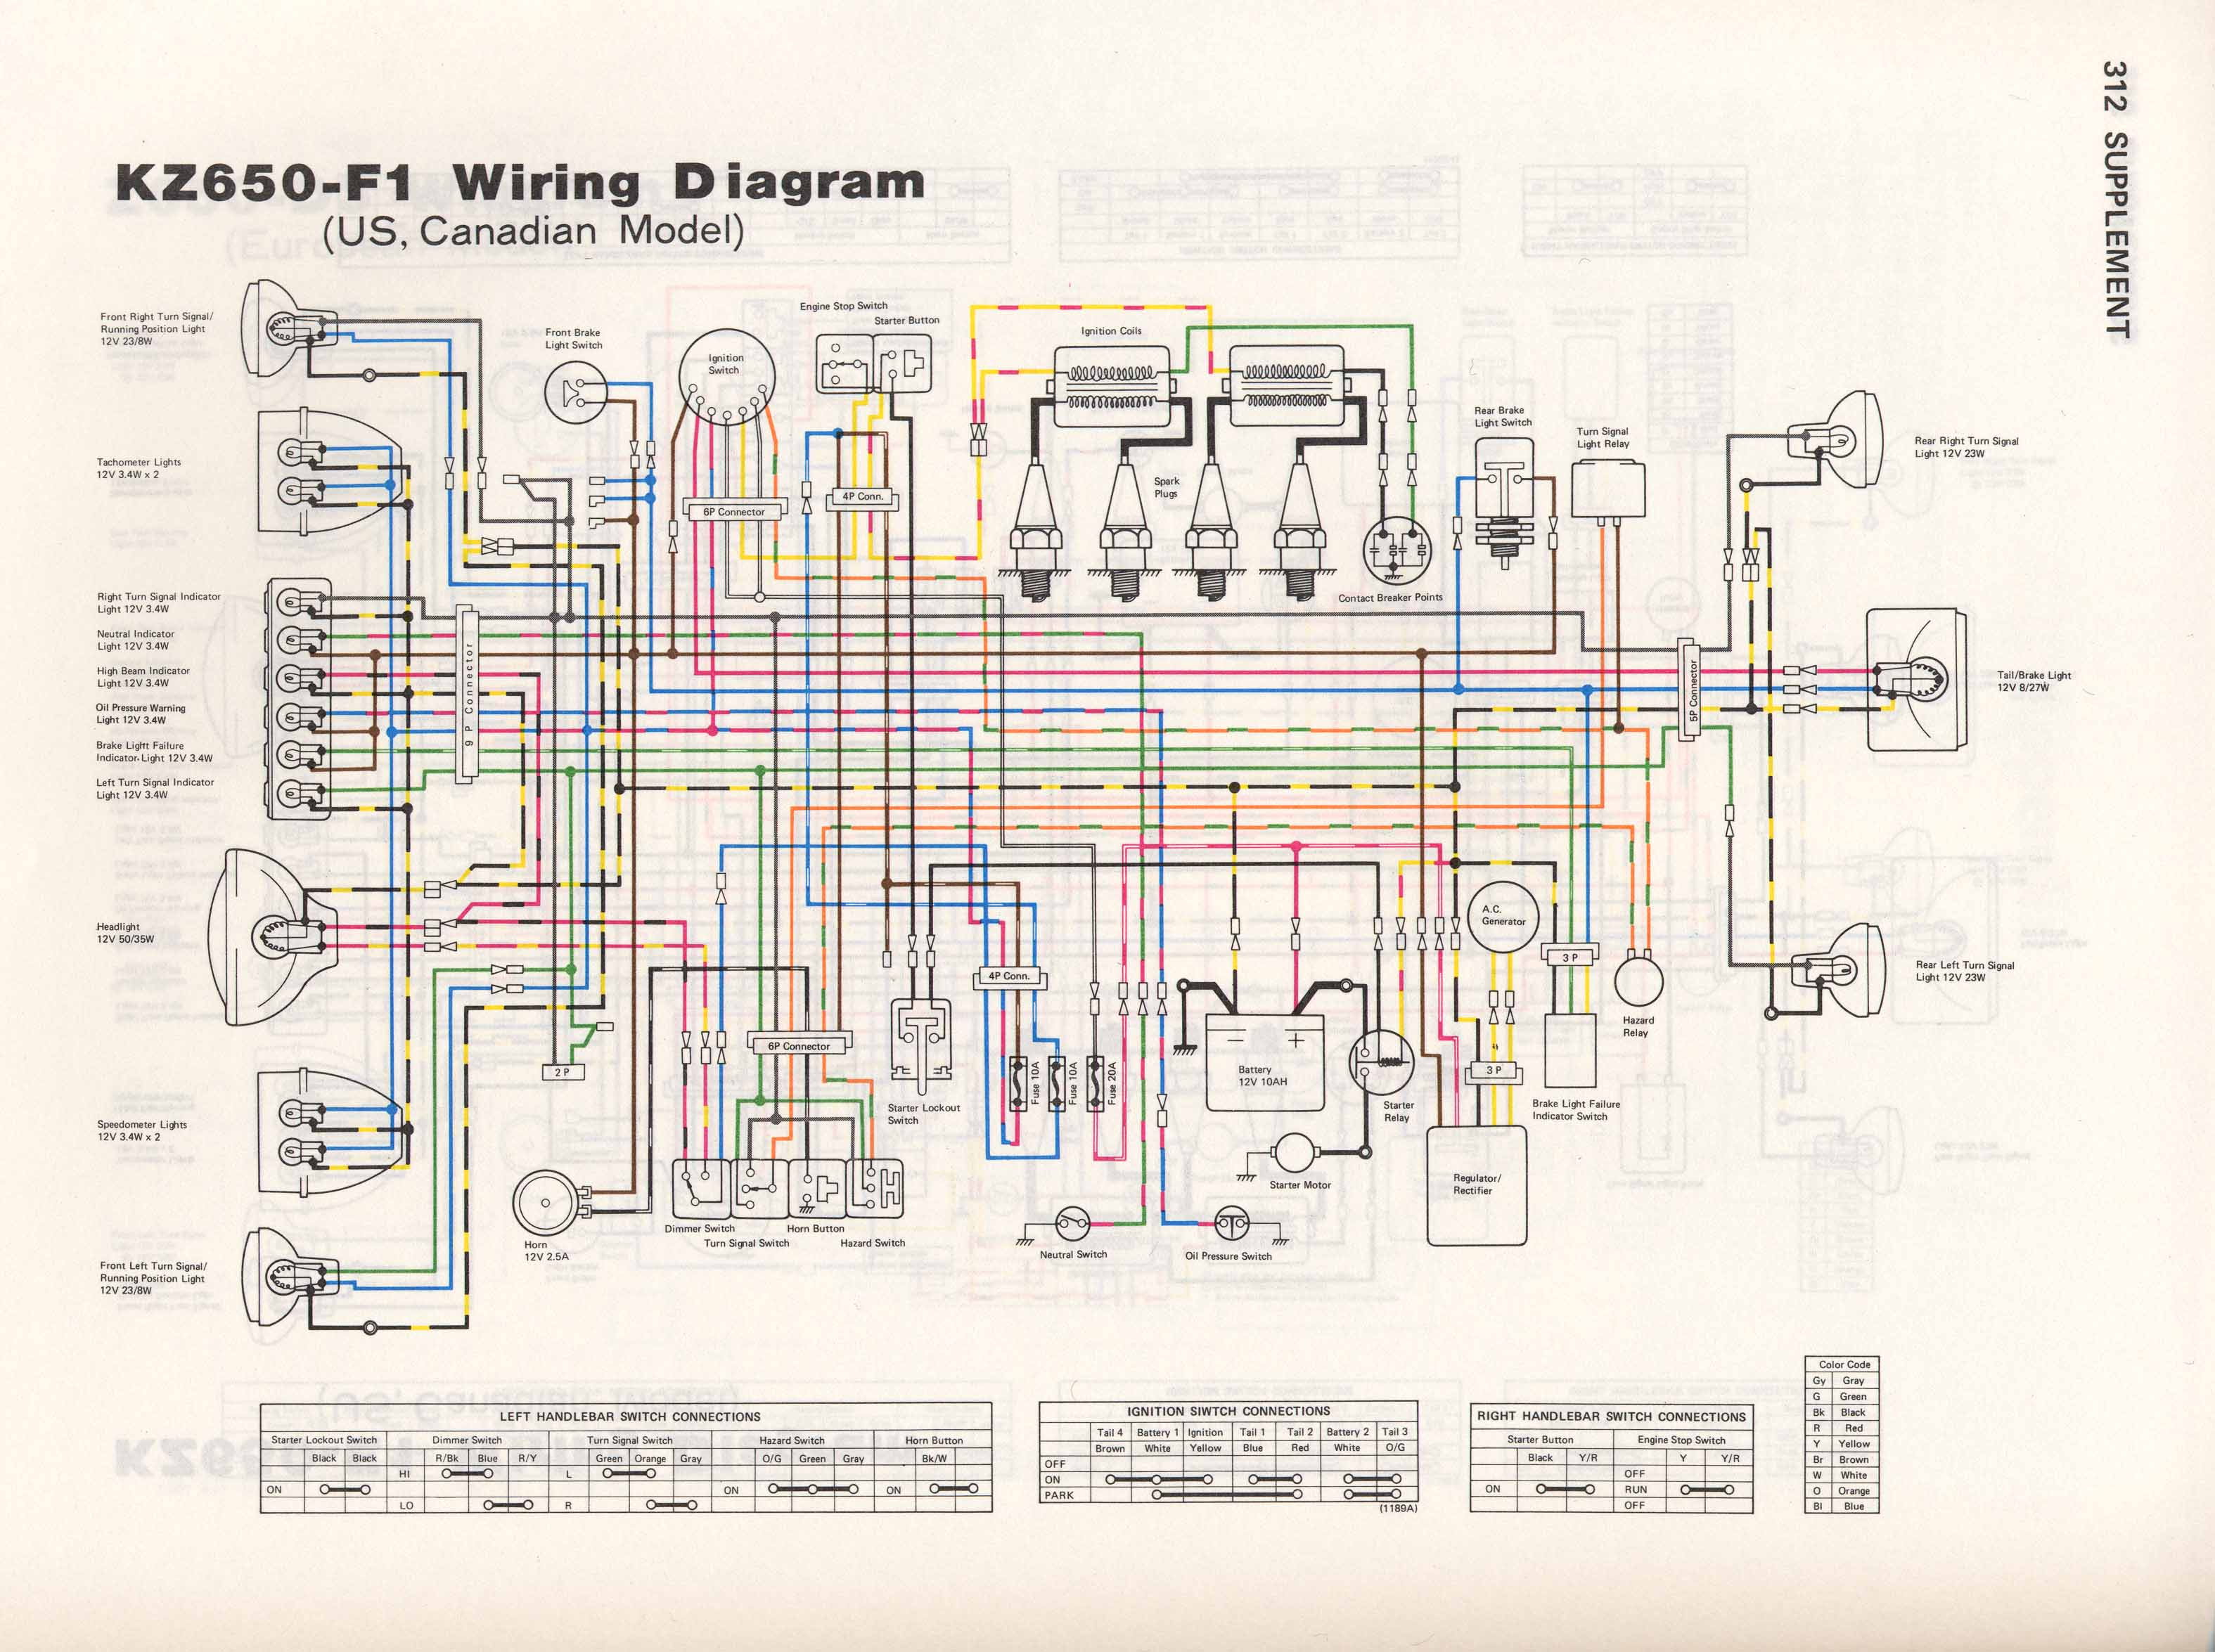 Diagram Wiring Kz650 E1 Data Schematic Lexus Rx400h Diagrams Hecho Info Rh Kz550 1978 Kawasaki